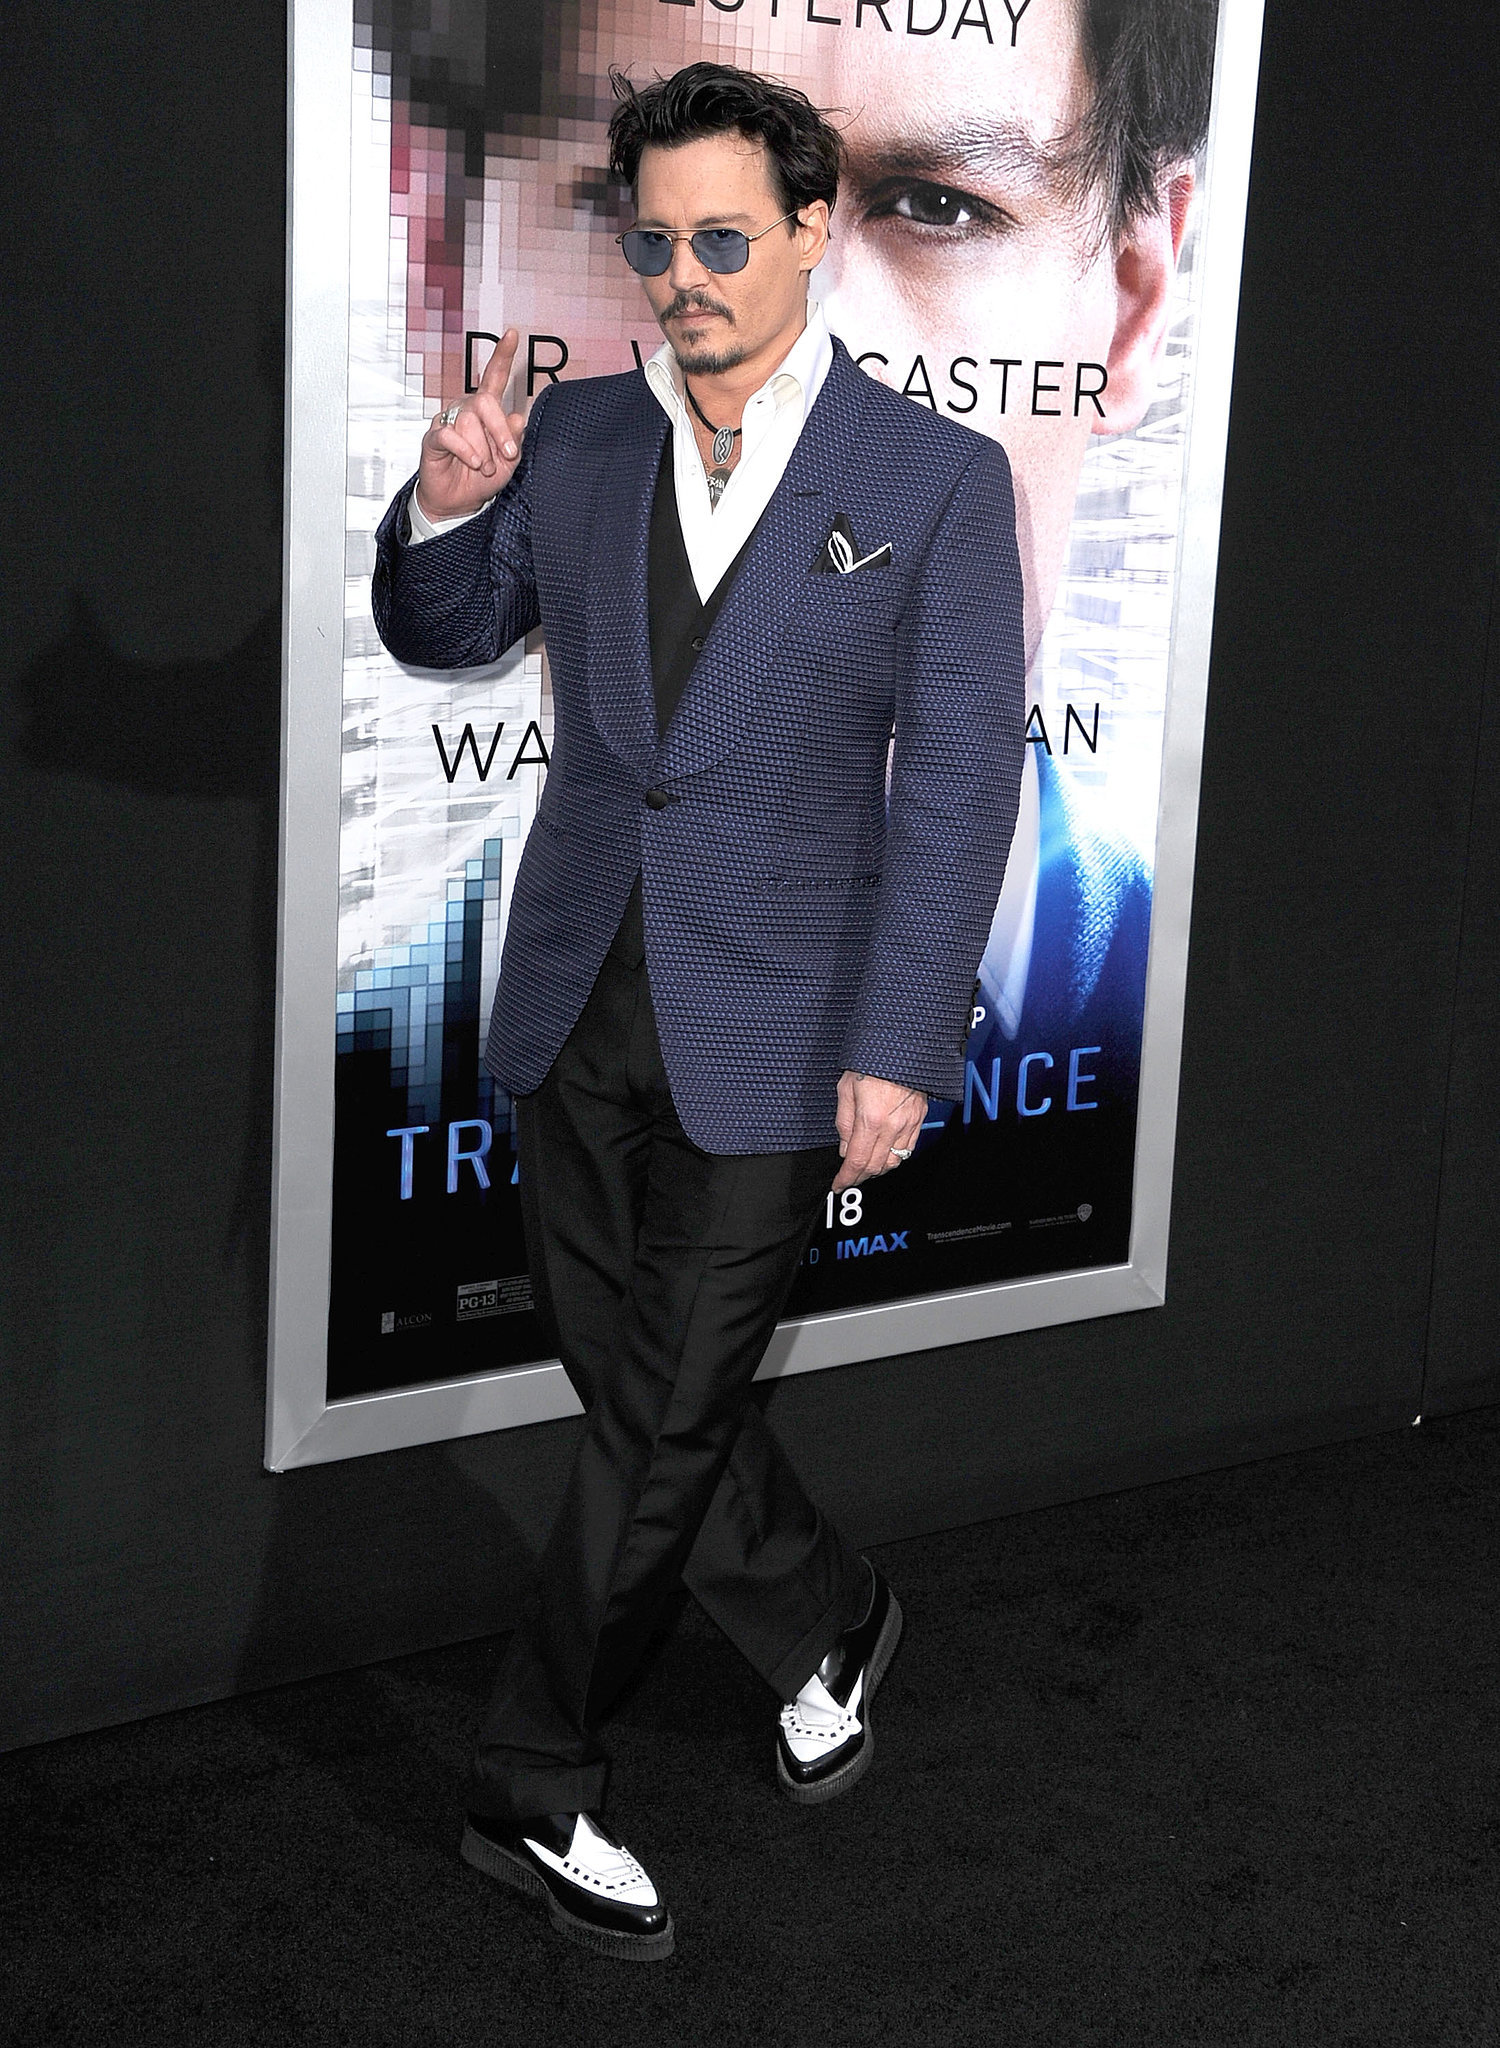 Johnny Depp Wears Amber Heard's Engagement Ring on the Red Carpet!